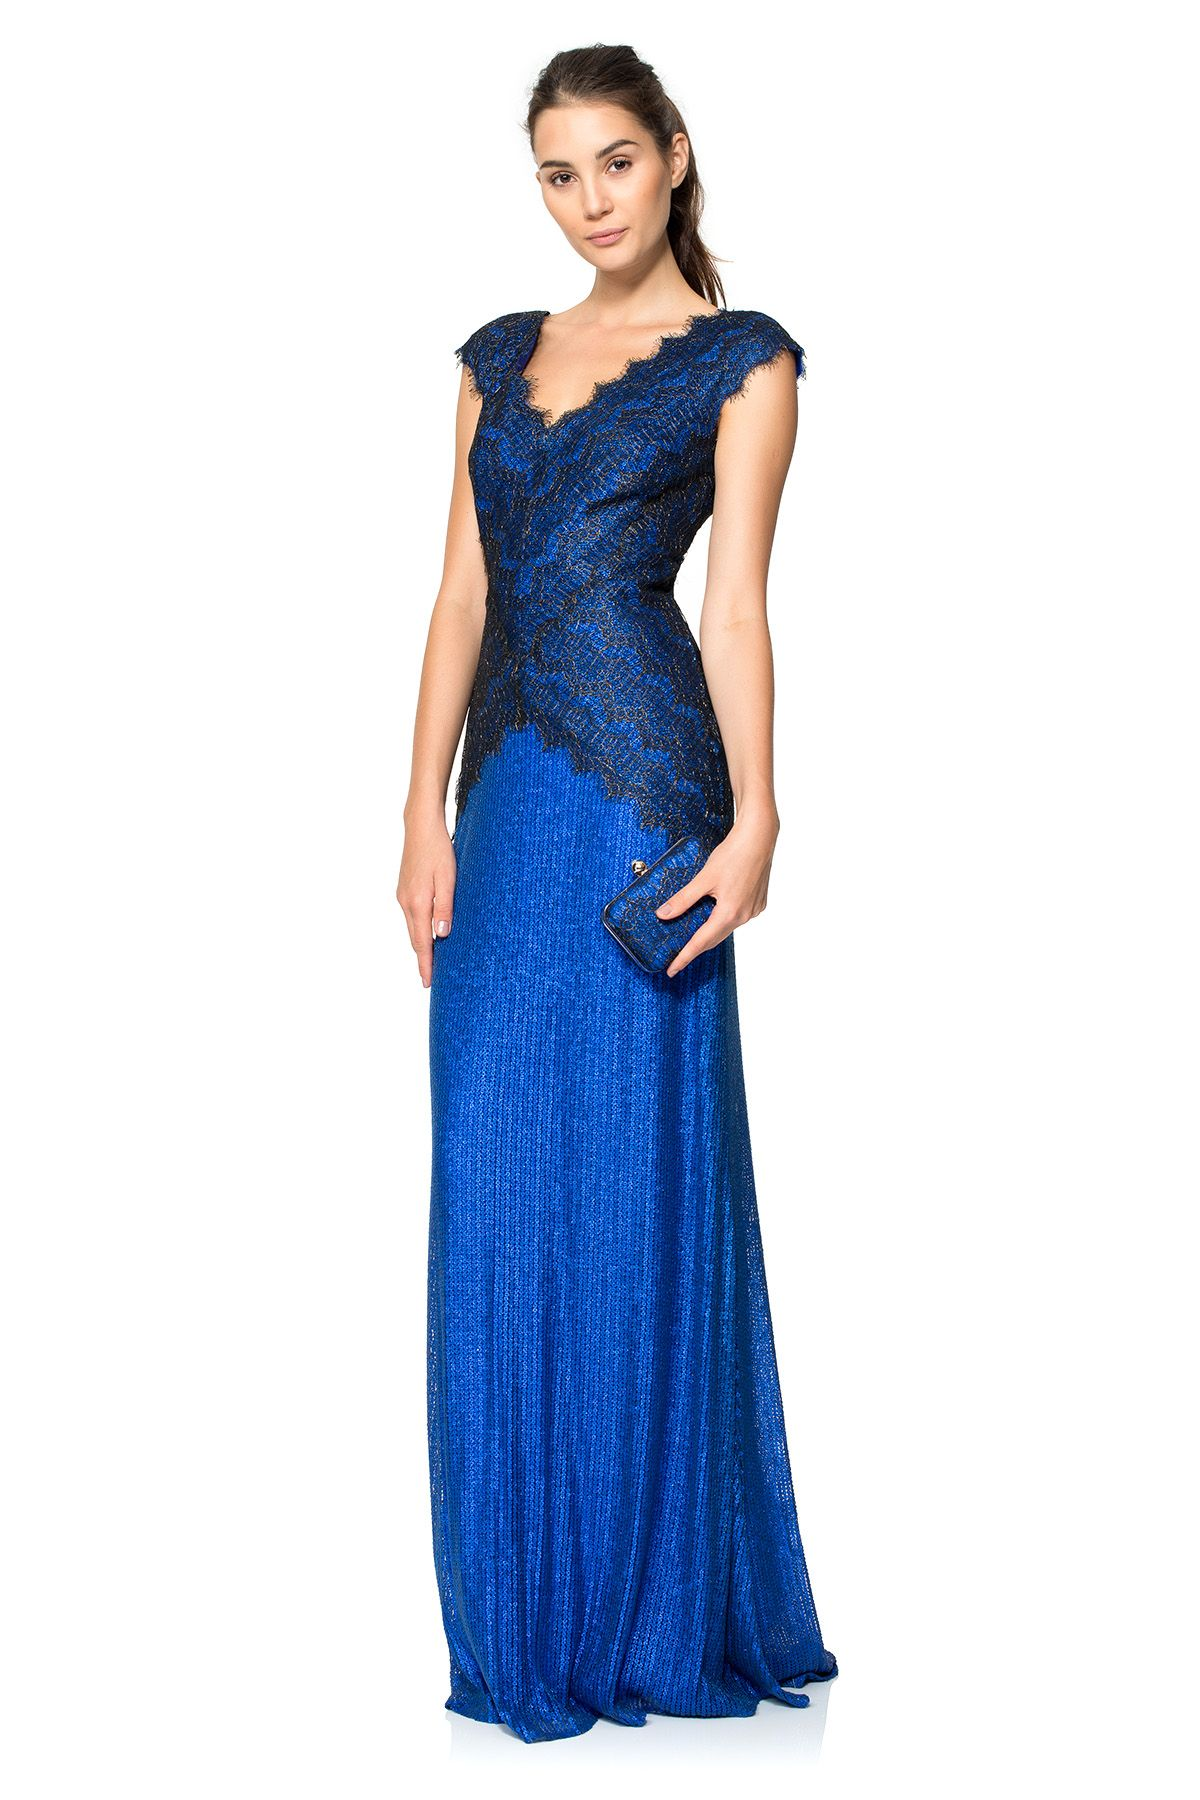 Fashion Trends, Celebrity Wedding Guest Dresses With V Neck Style ...